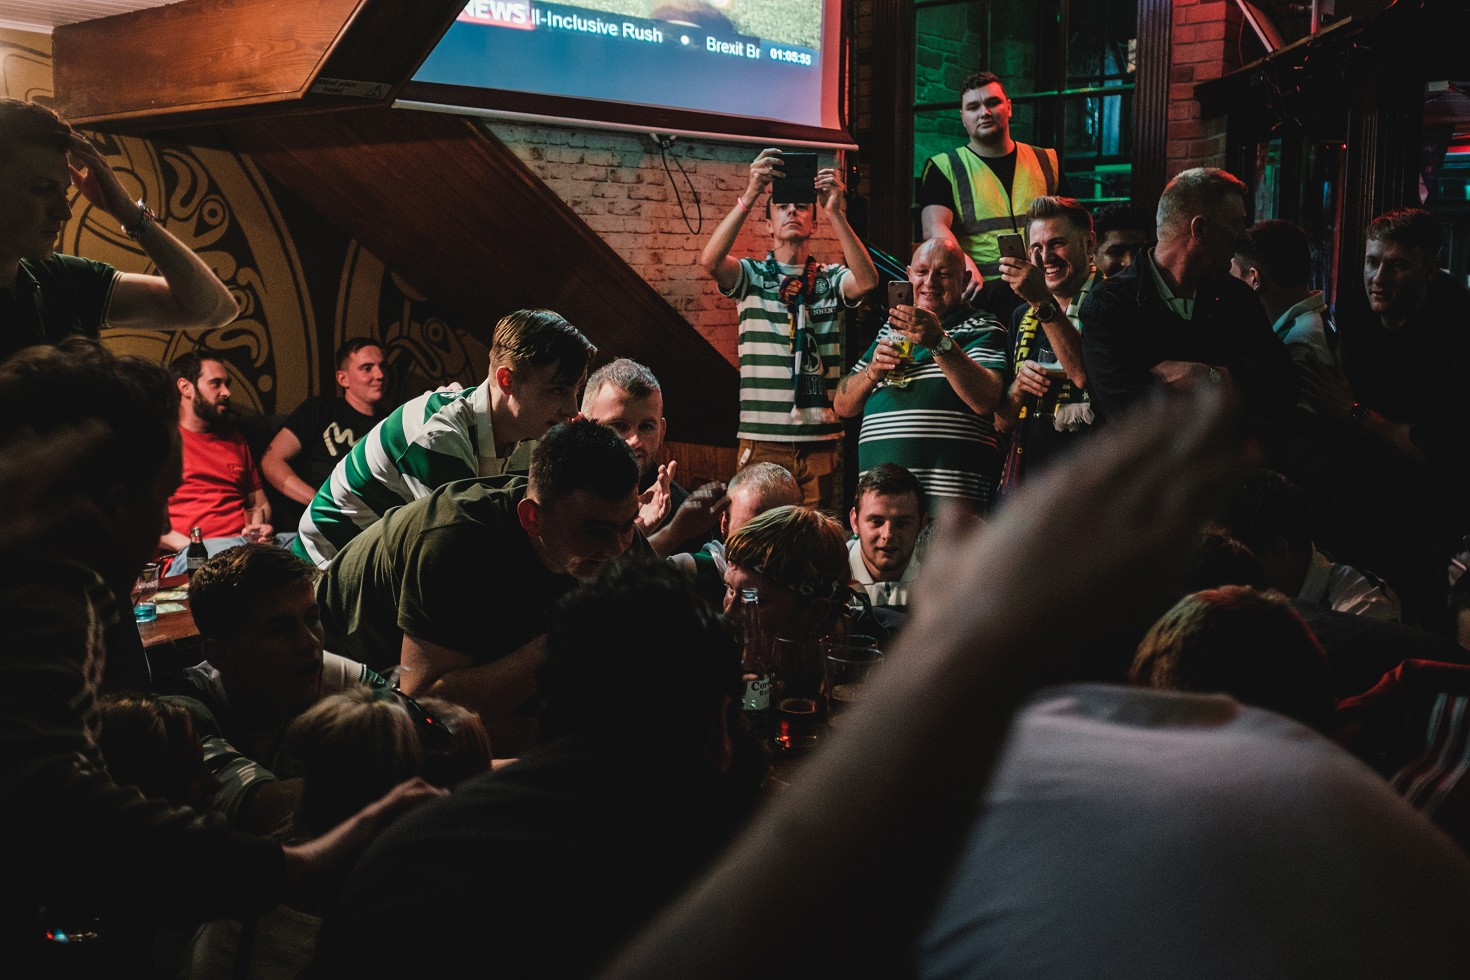 Celtic-Barca-Barcelona-Dublin-Temple-Bar-Aviva-Ireland-Fans (45 von 68)